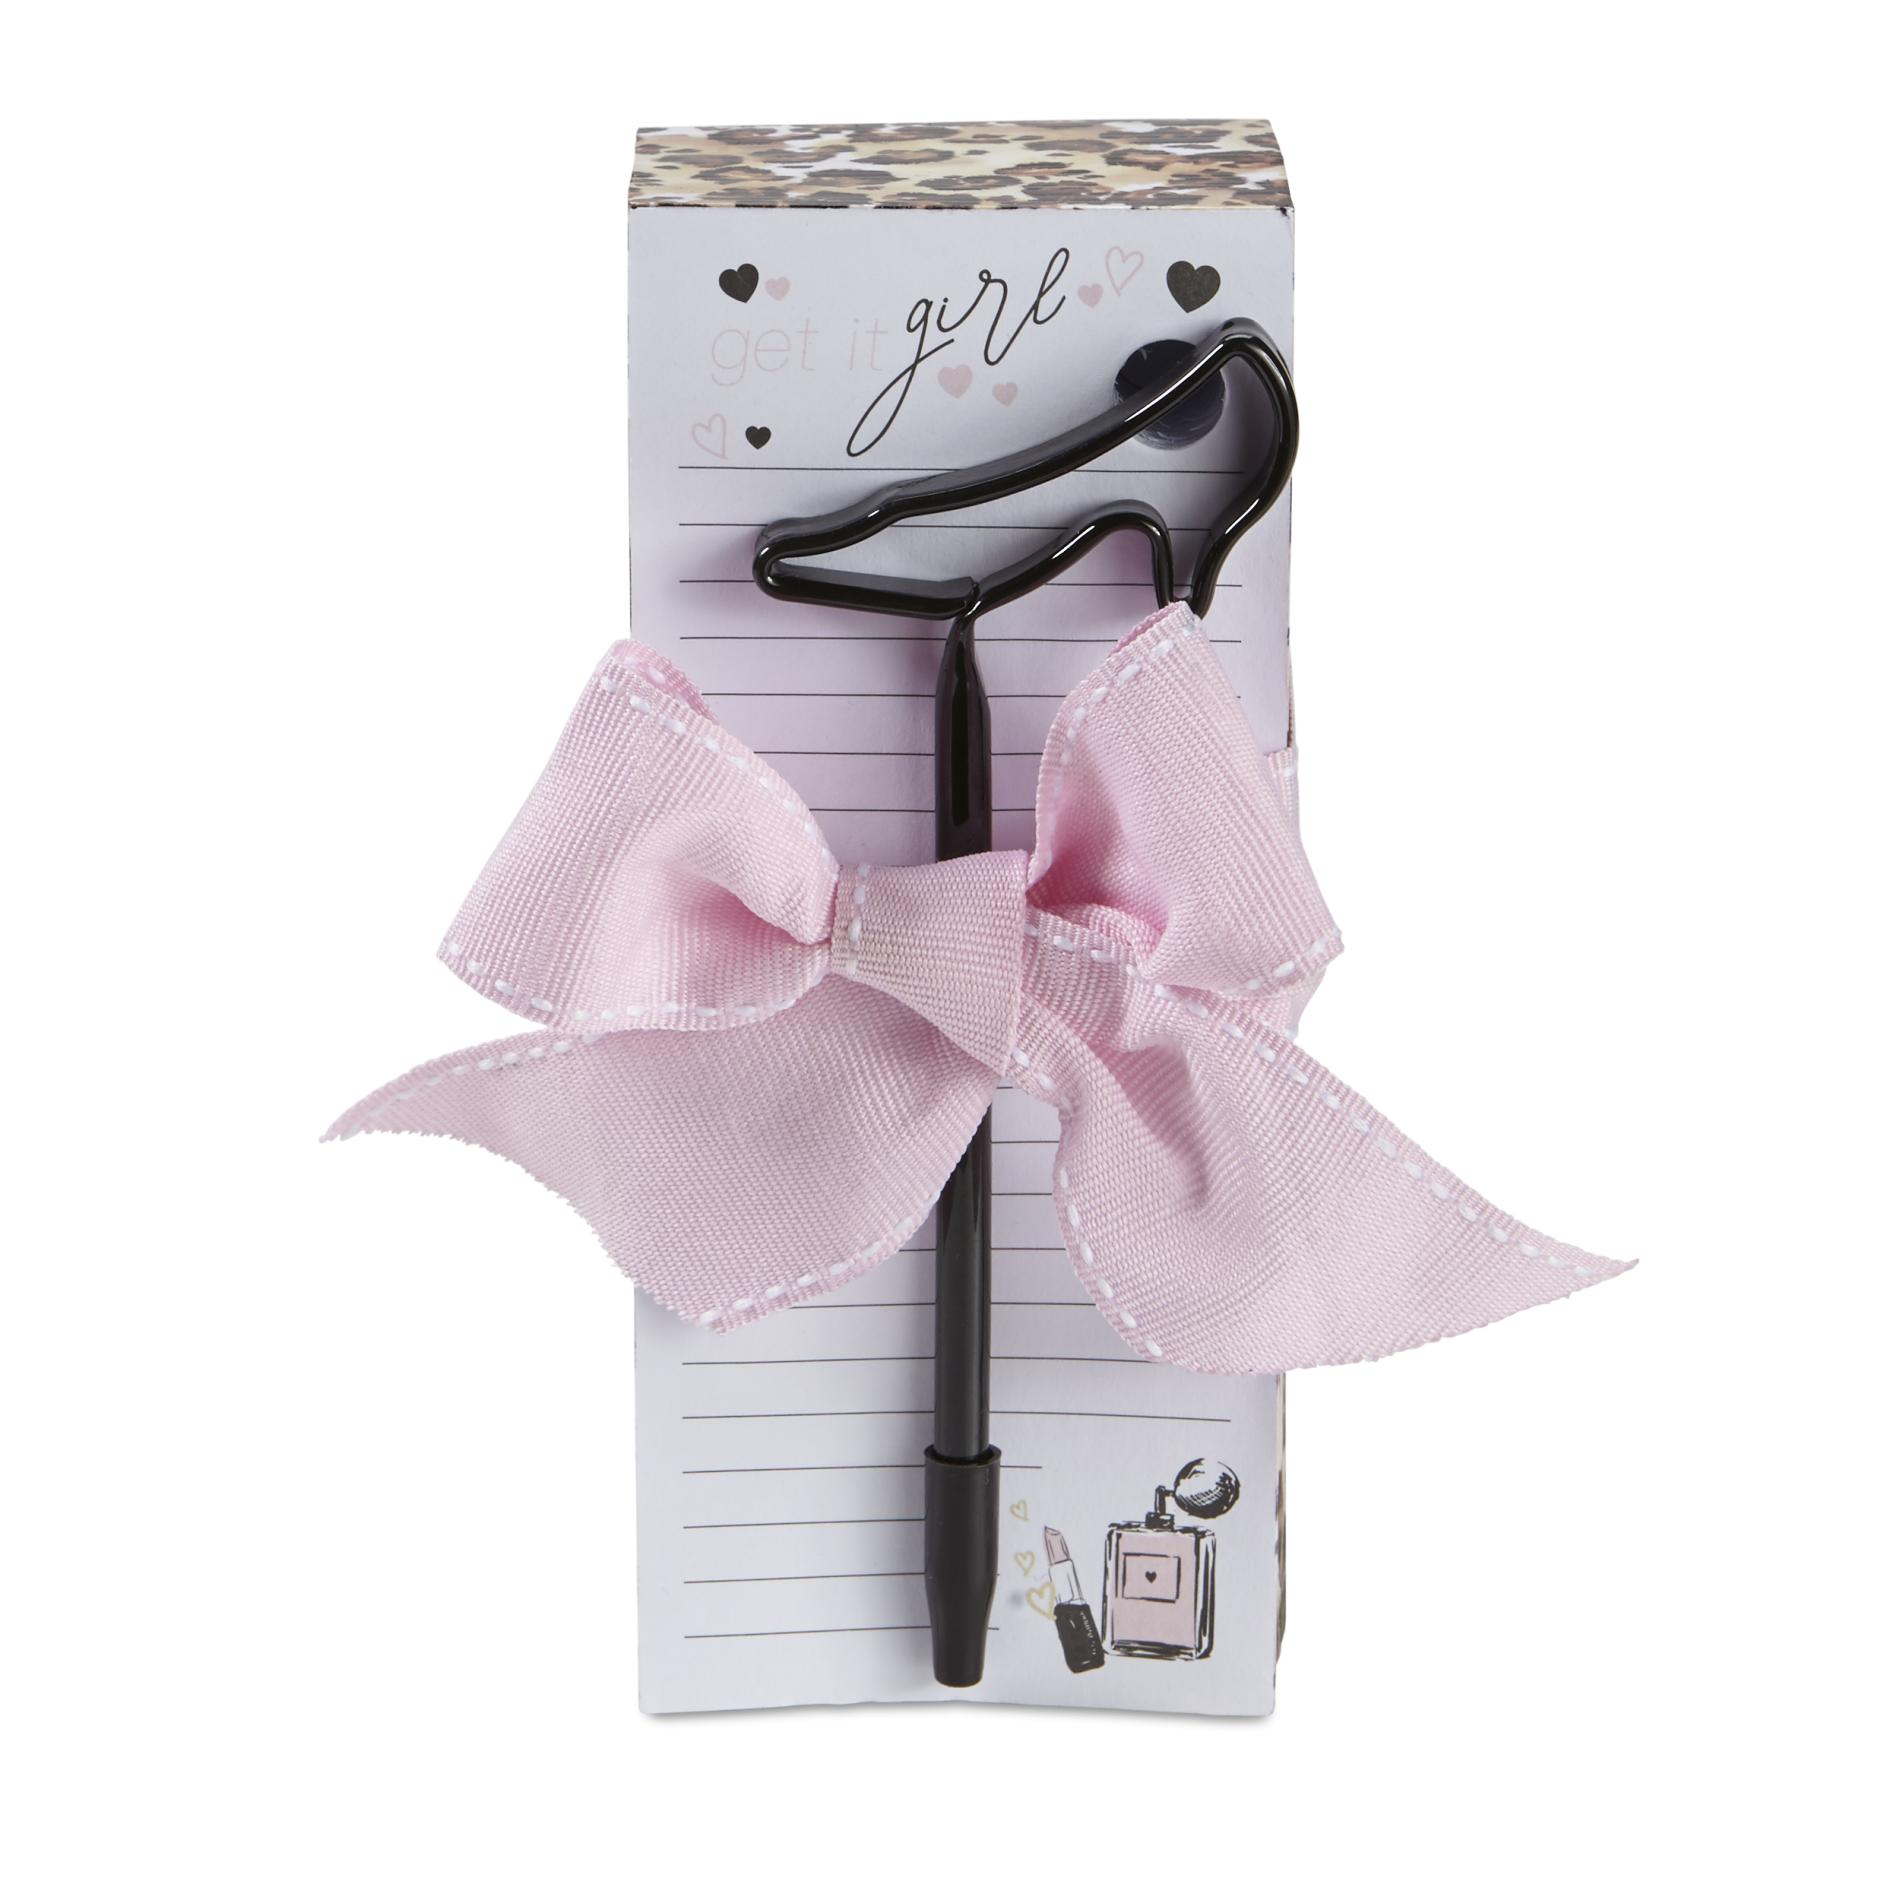 Image of 1136-20155 Notepad & Pen - Get It Girl, Multi Color